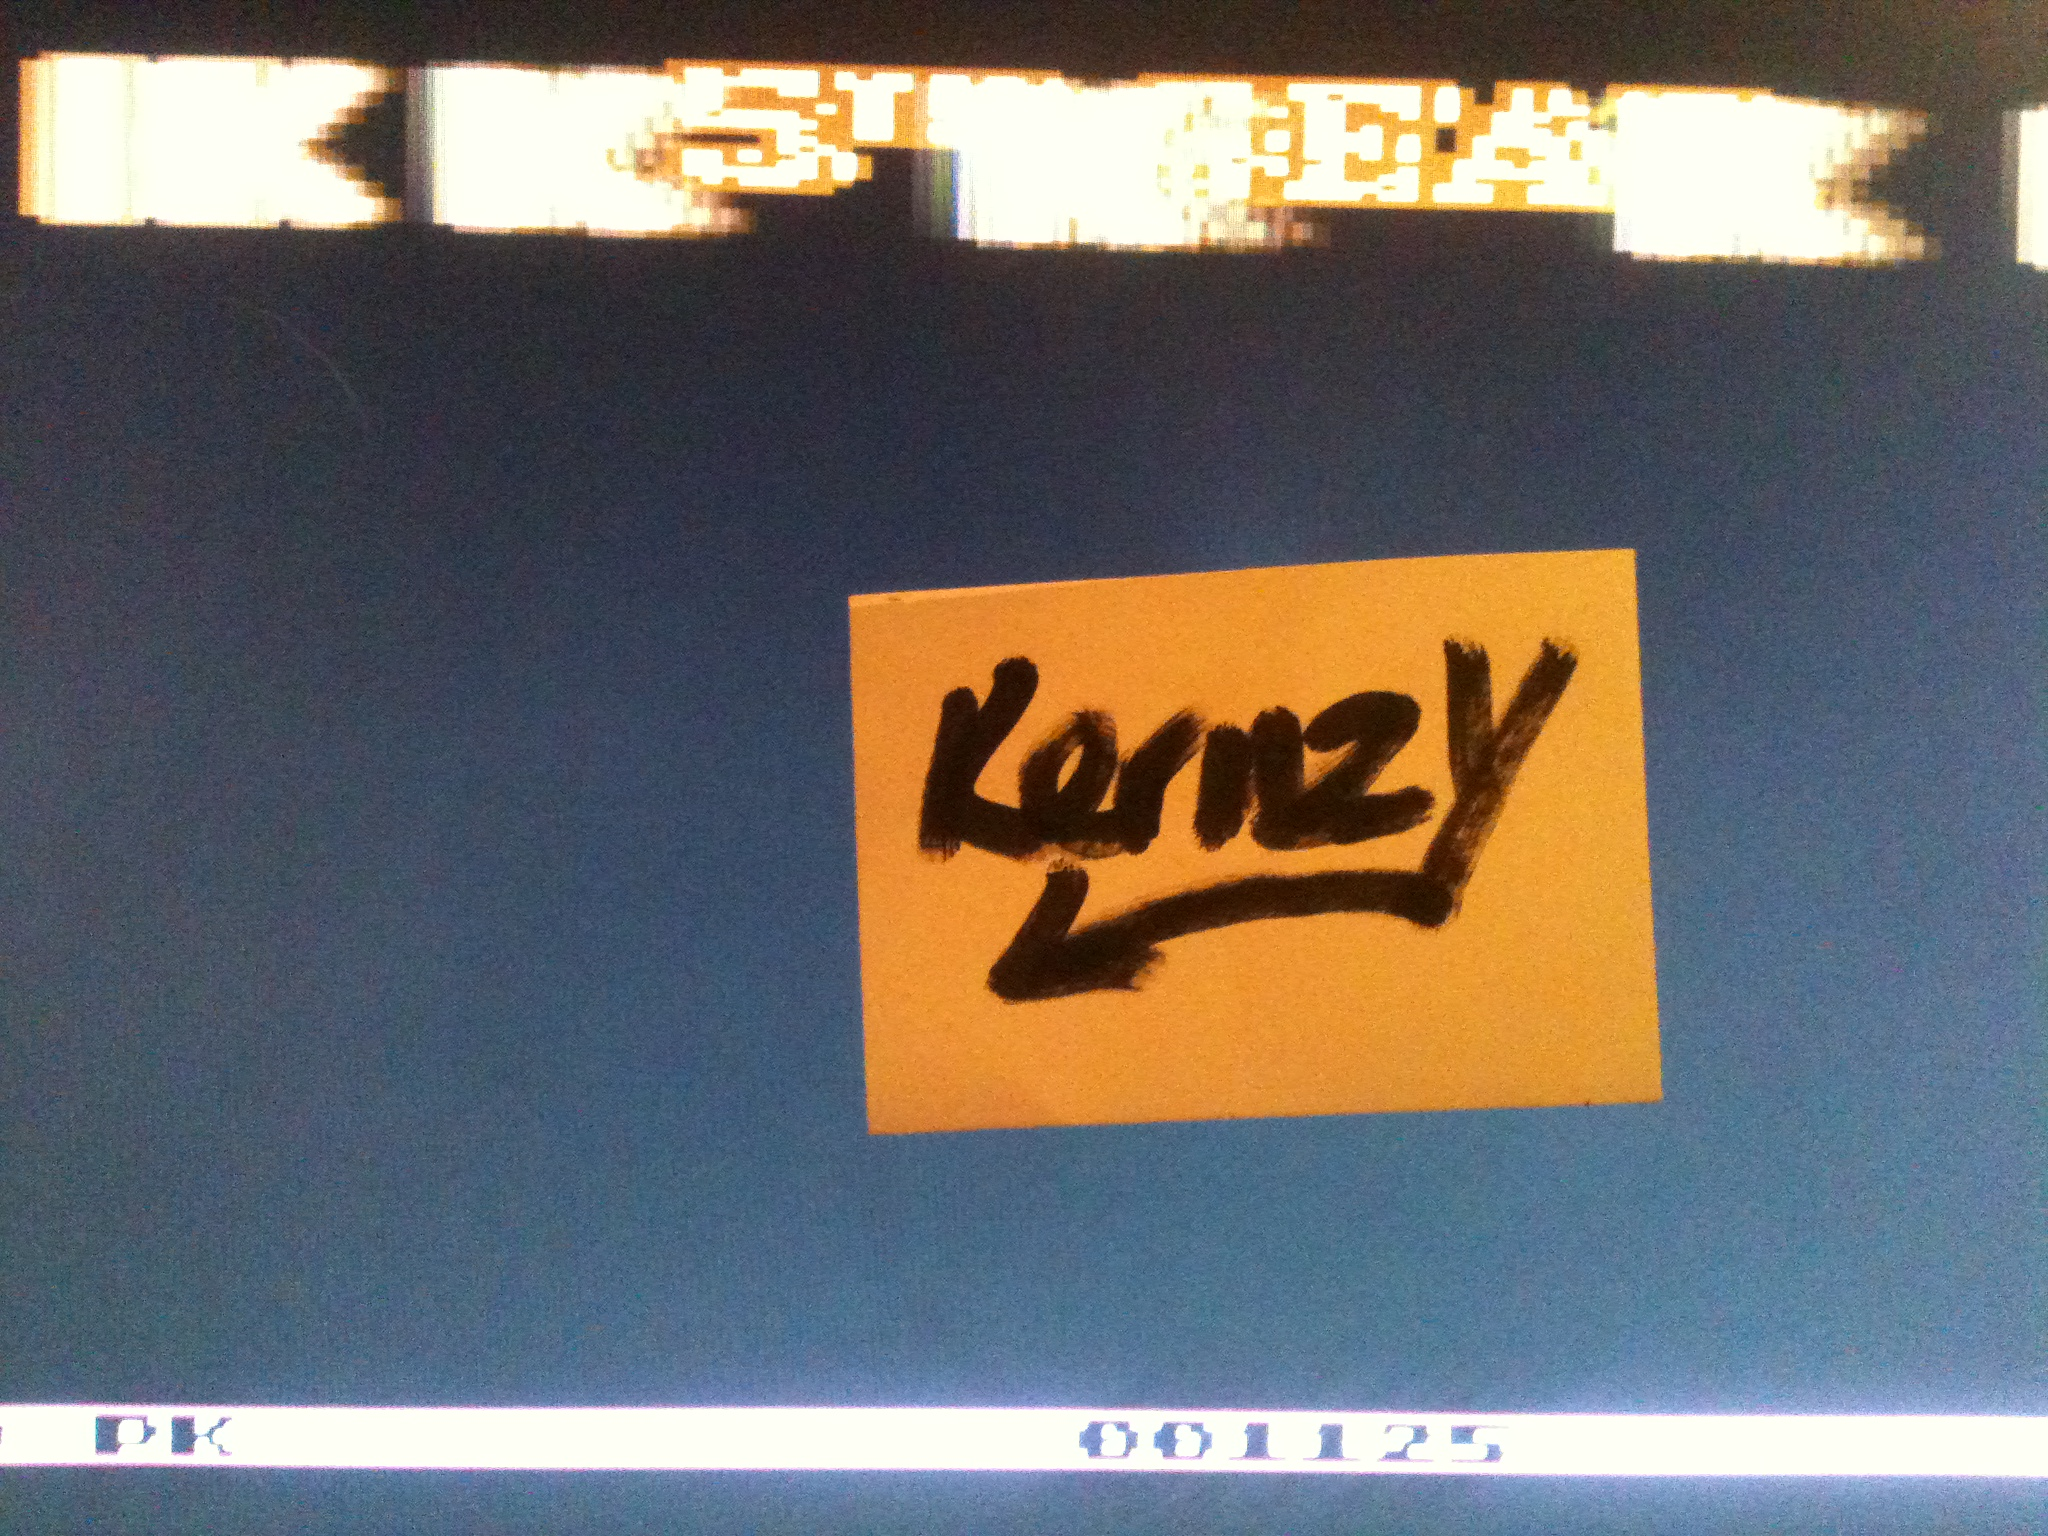 kernzy: 5th Gear (Commodore 64 Emulated) 1,125 points on 2015-05-07 16:49:34